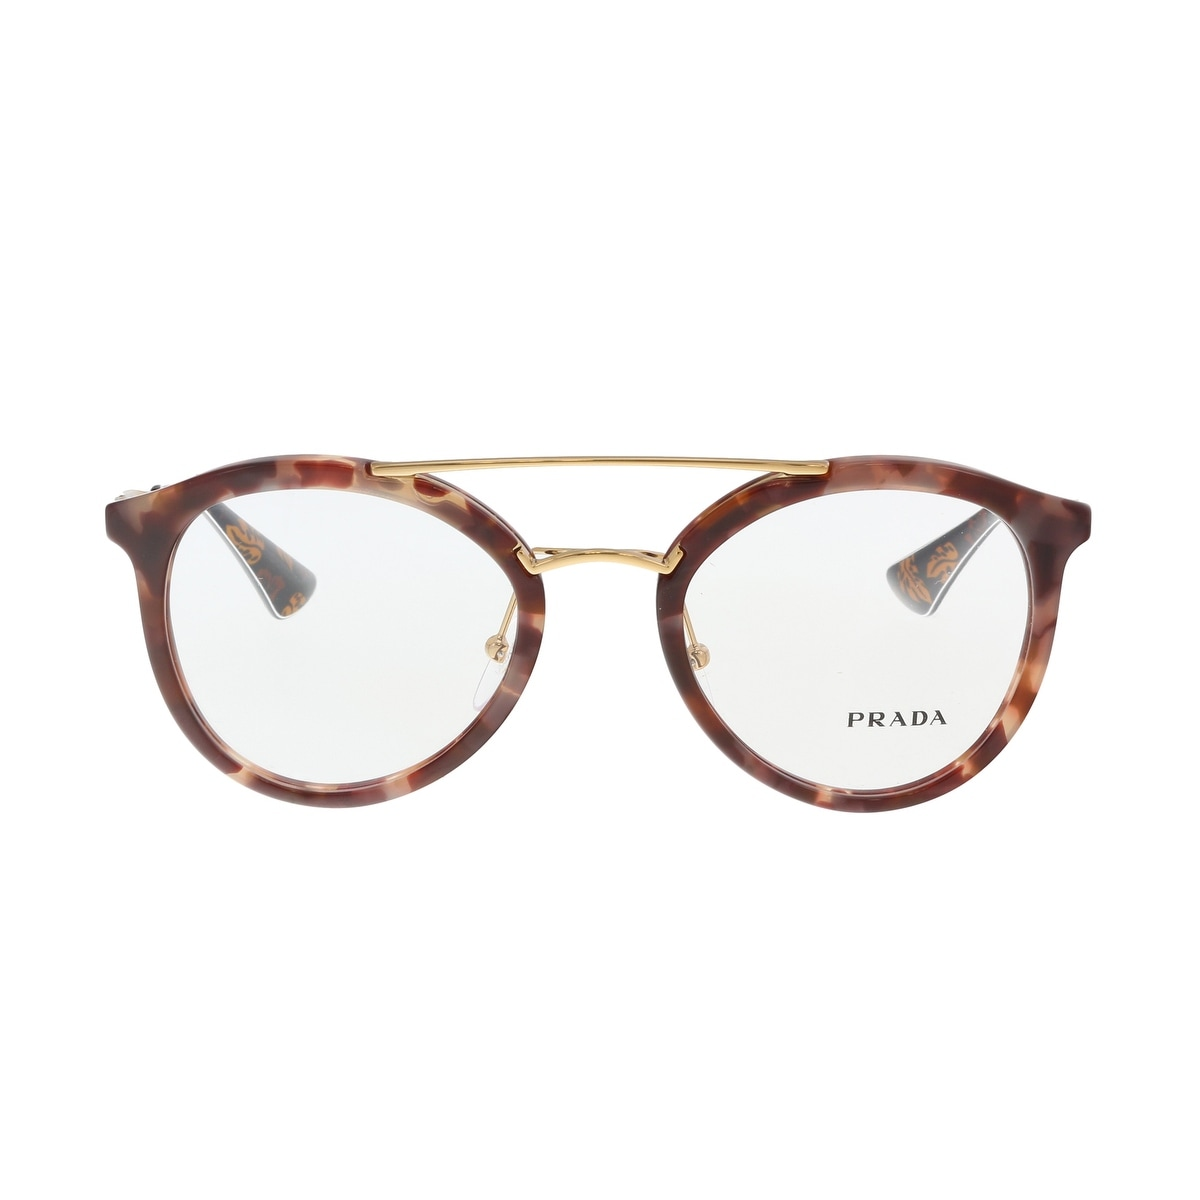 00ac5fb53f Shop Prada PR 15TV UE01O1 Pink Havana Round Optical Frames - 50-21-140 -  Free Shipping Today - Overstock - 19547299